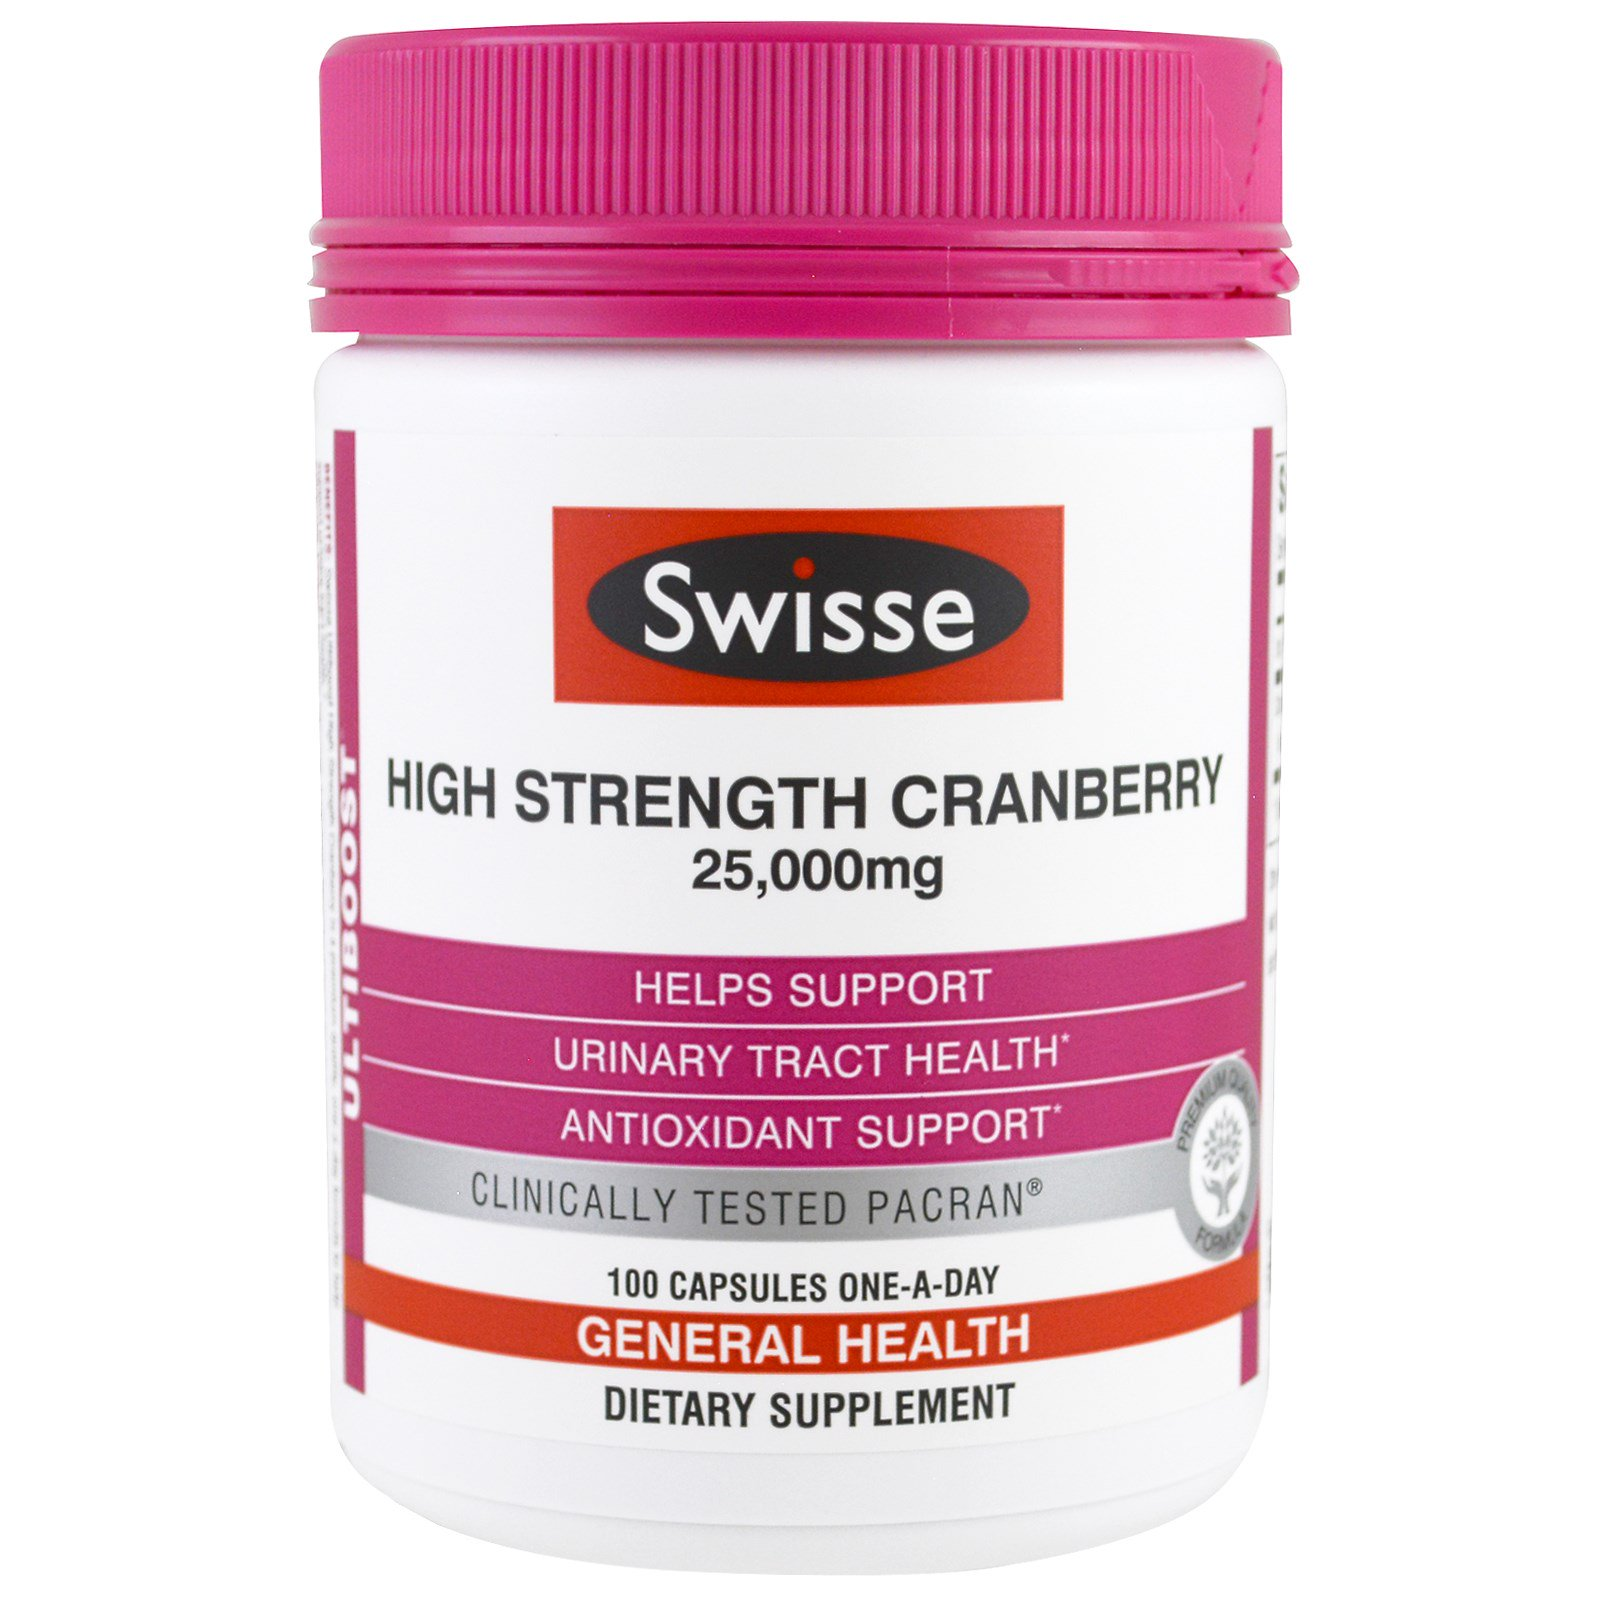 Swisse, Ultiboost, High Strength Cranberry, 25,000 mg, 100 Capsules